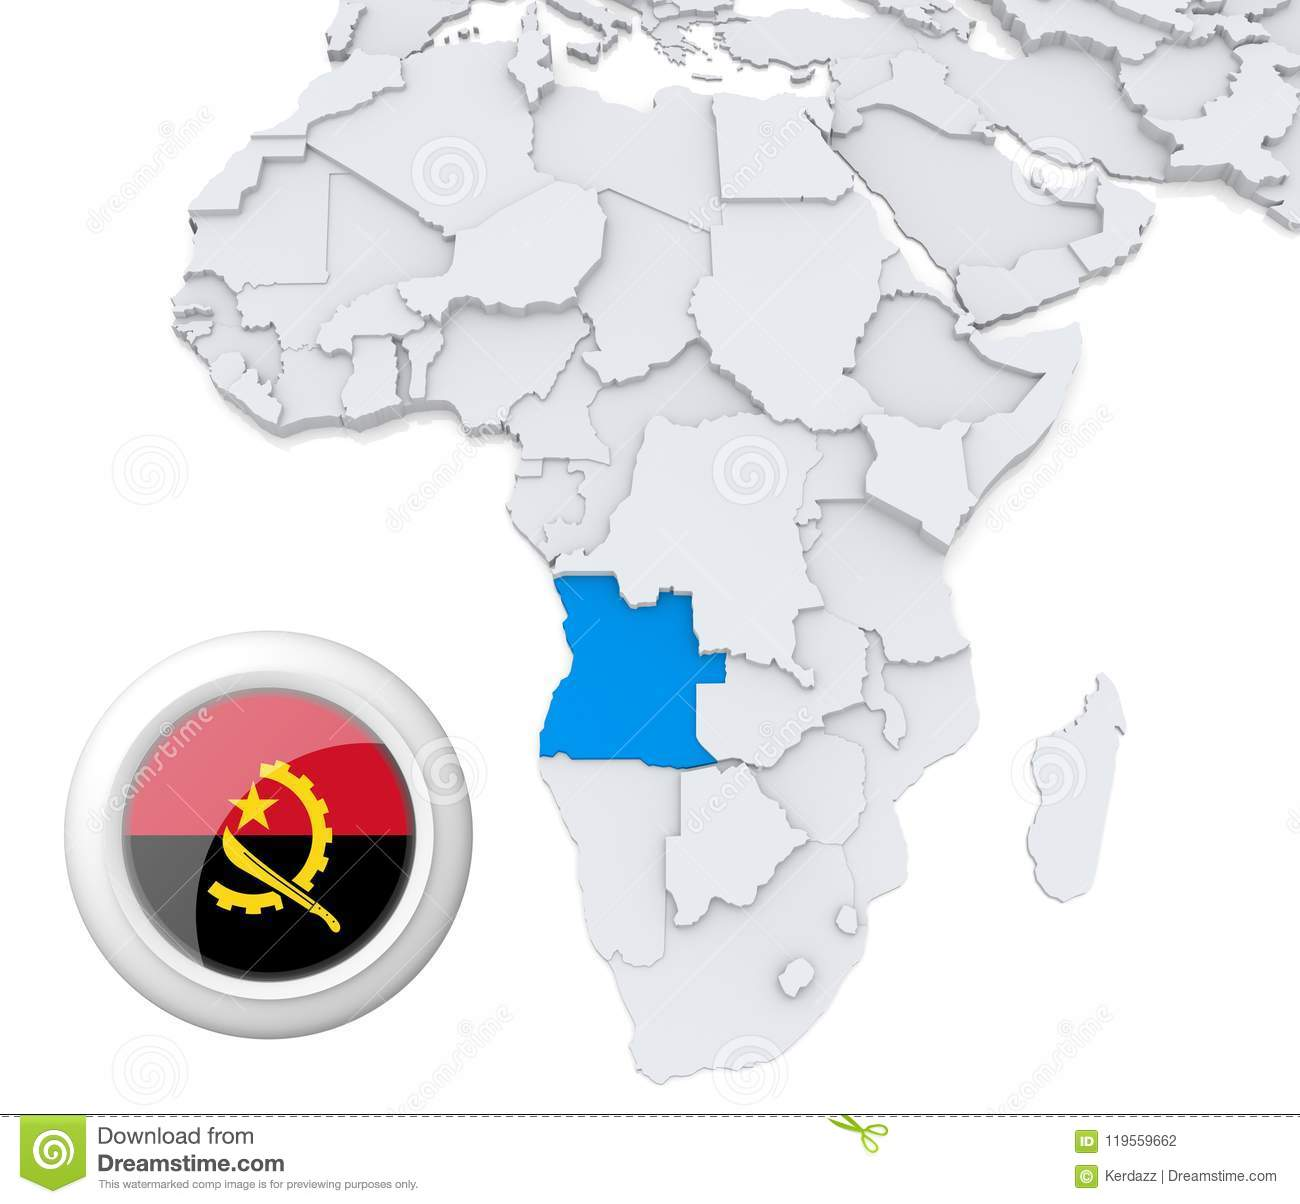 Angola On Africa Map.Angola On Africa Map Stock Illustration Illustration Of Politics